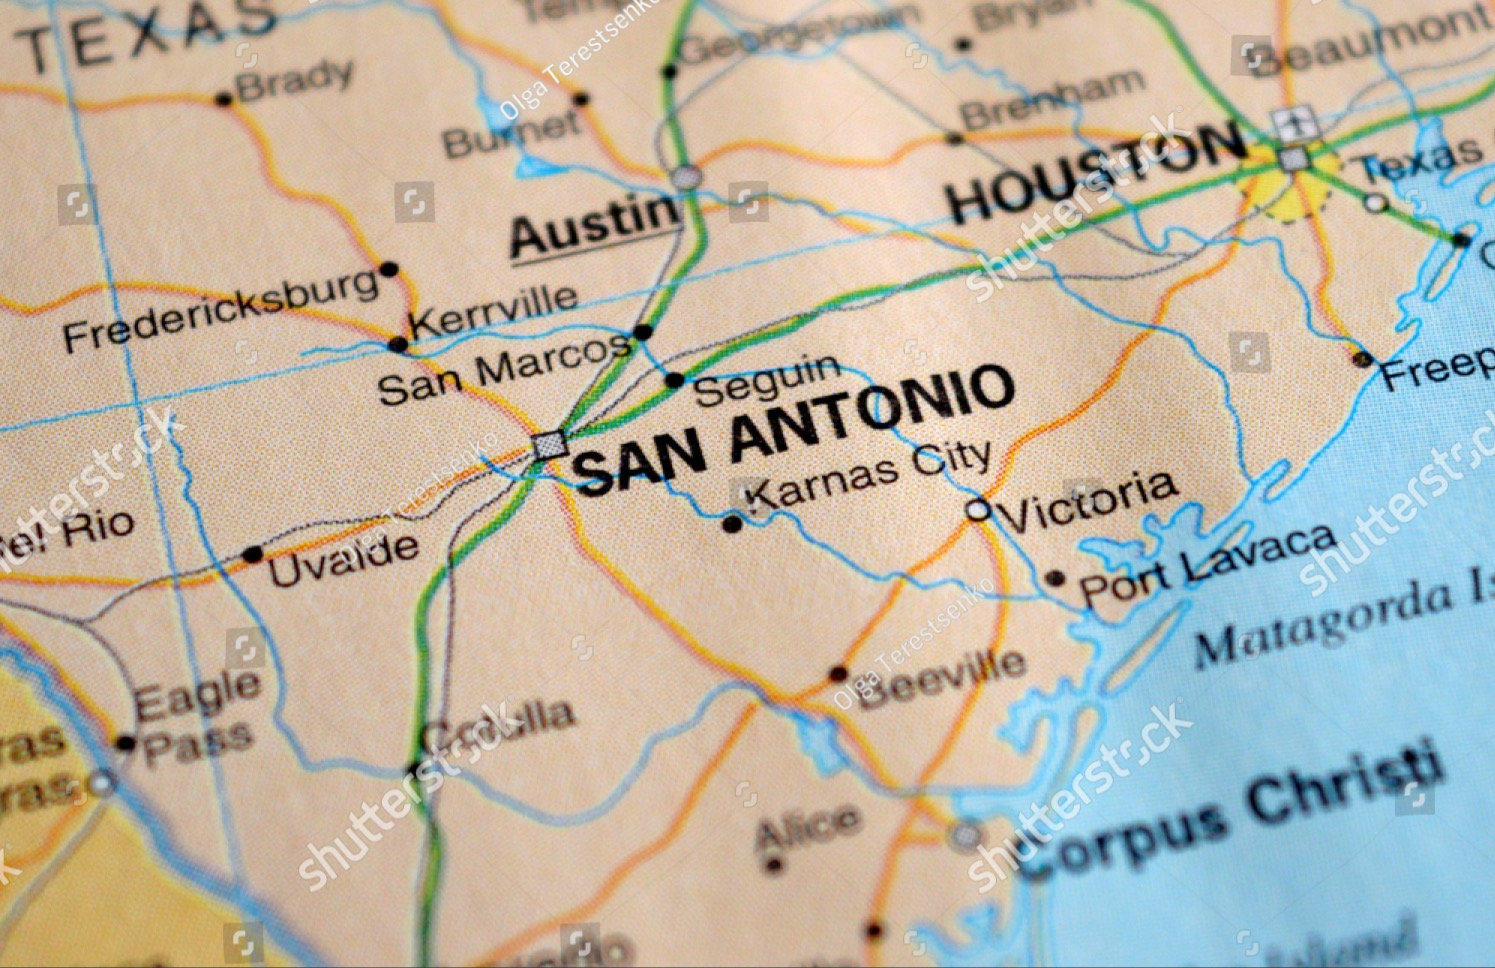 San Antonio Map 2_edited.jpg